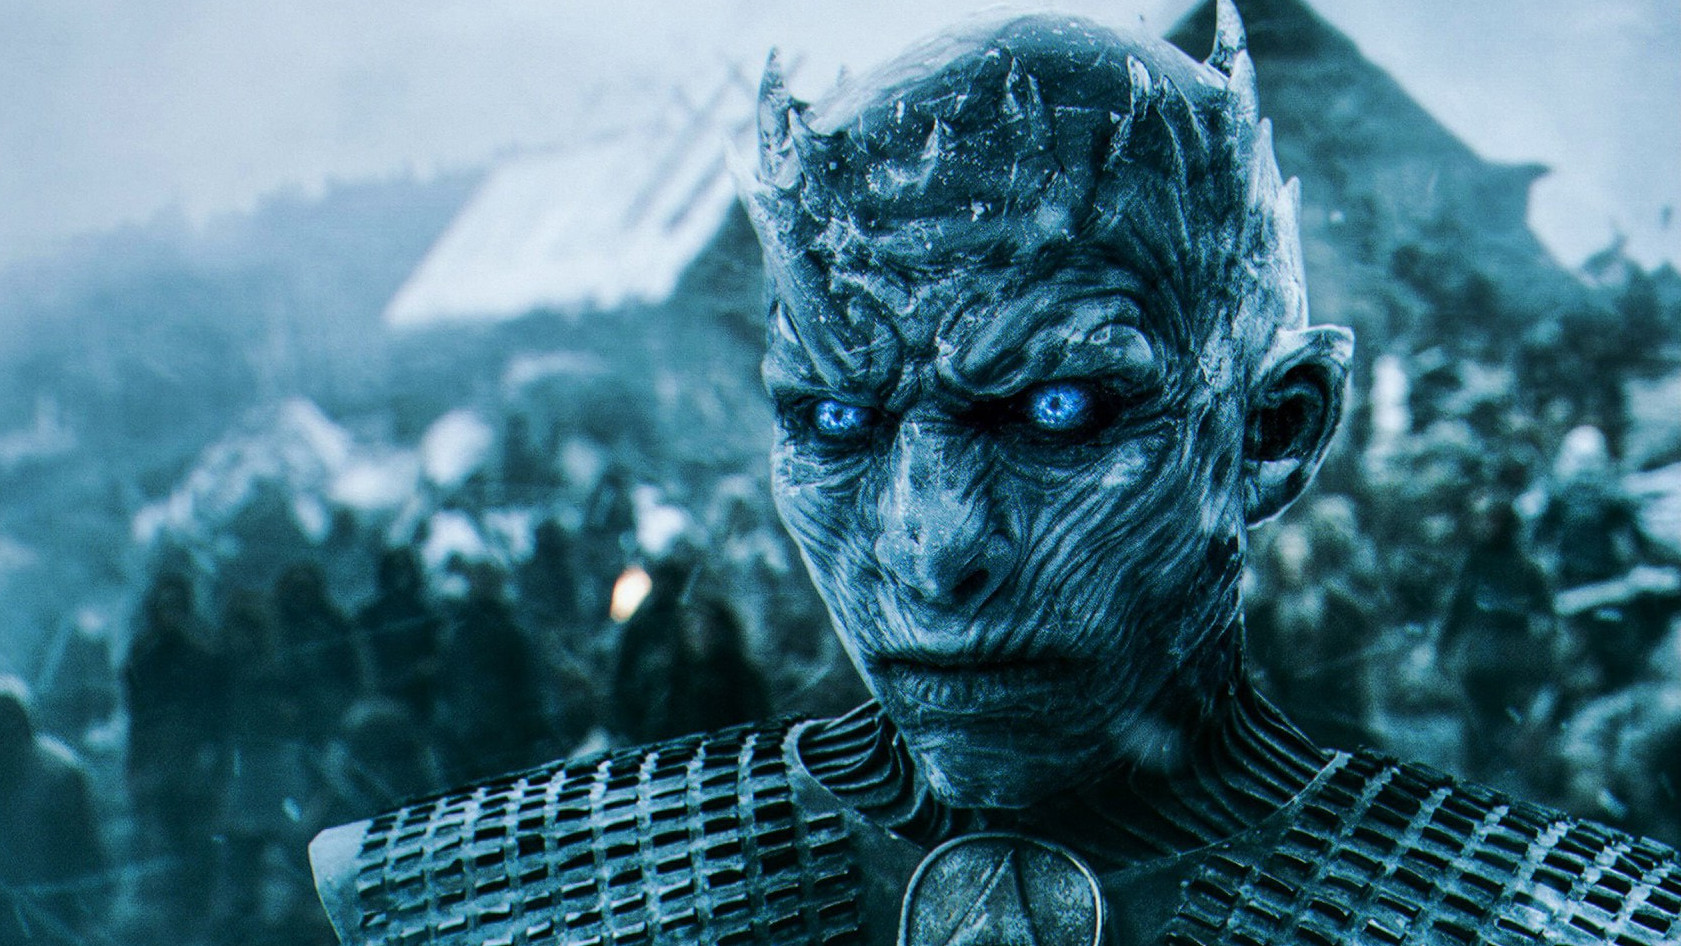 Game of Thrones season 8 - Game of Thrones season 8: the enigmatic symbol left by the night king is it a clue that identifies his identity?